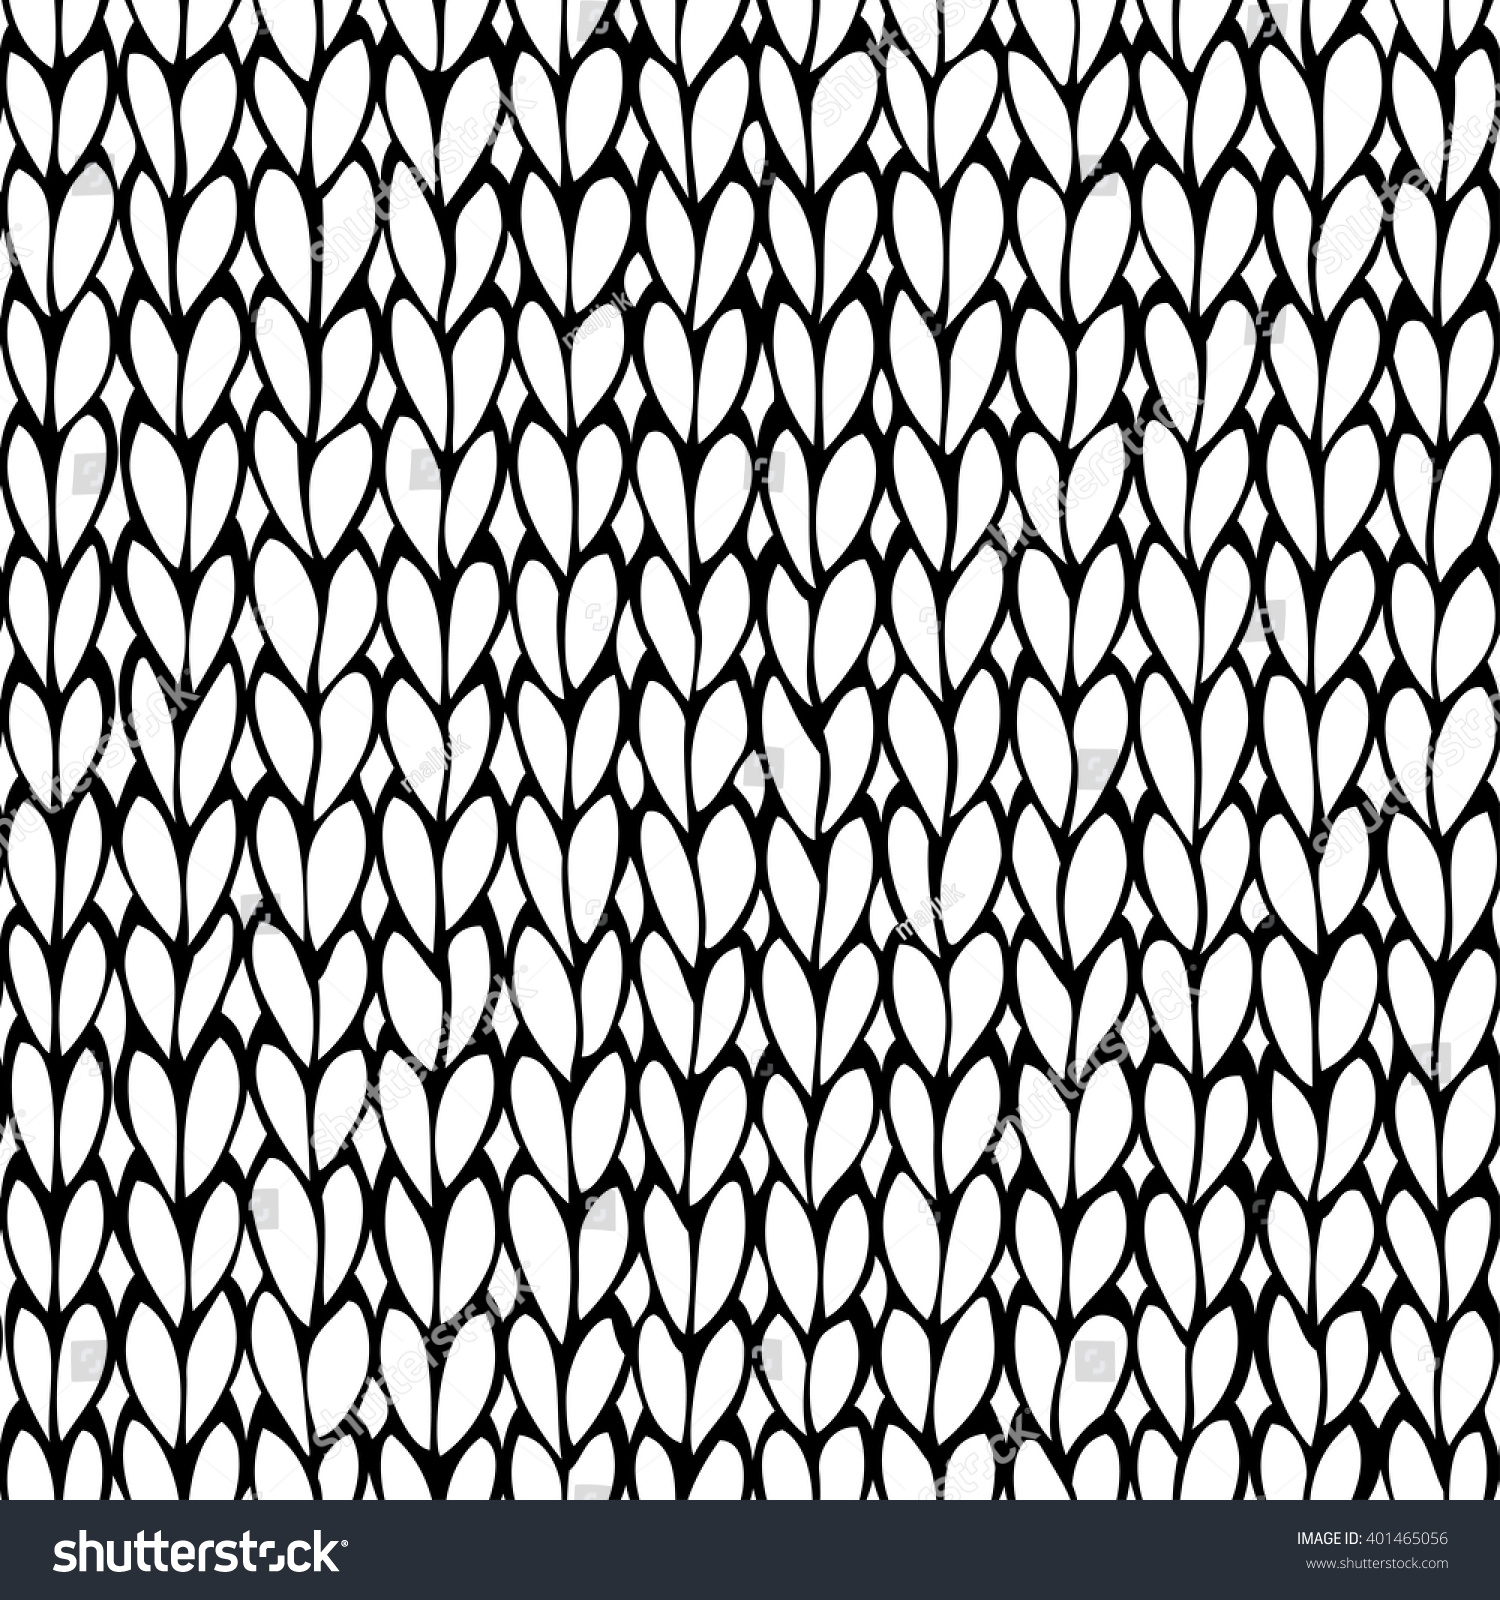 Vector Doodles Stockinette Stitch Texture. Seamless Black And White Knitted P...